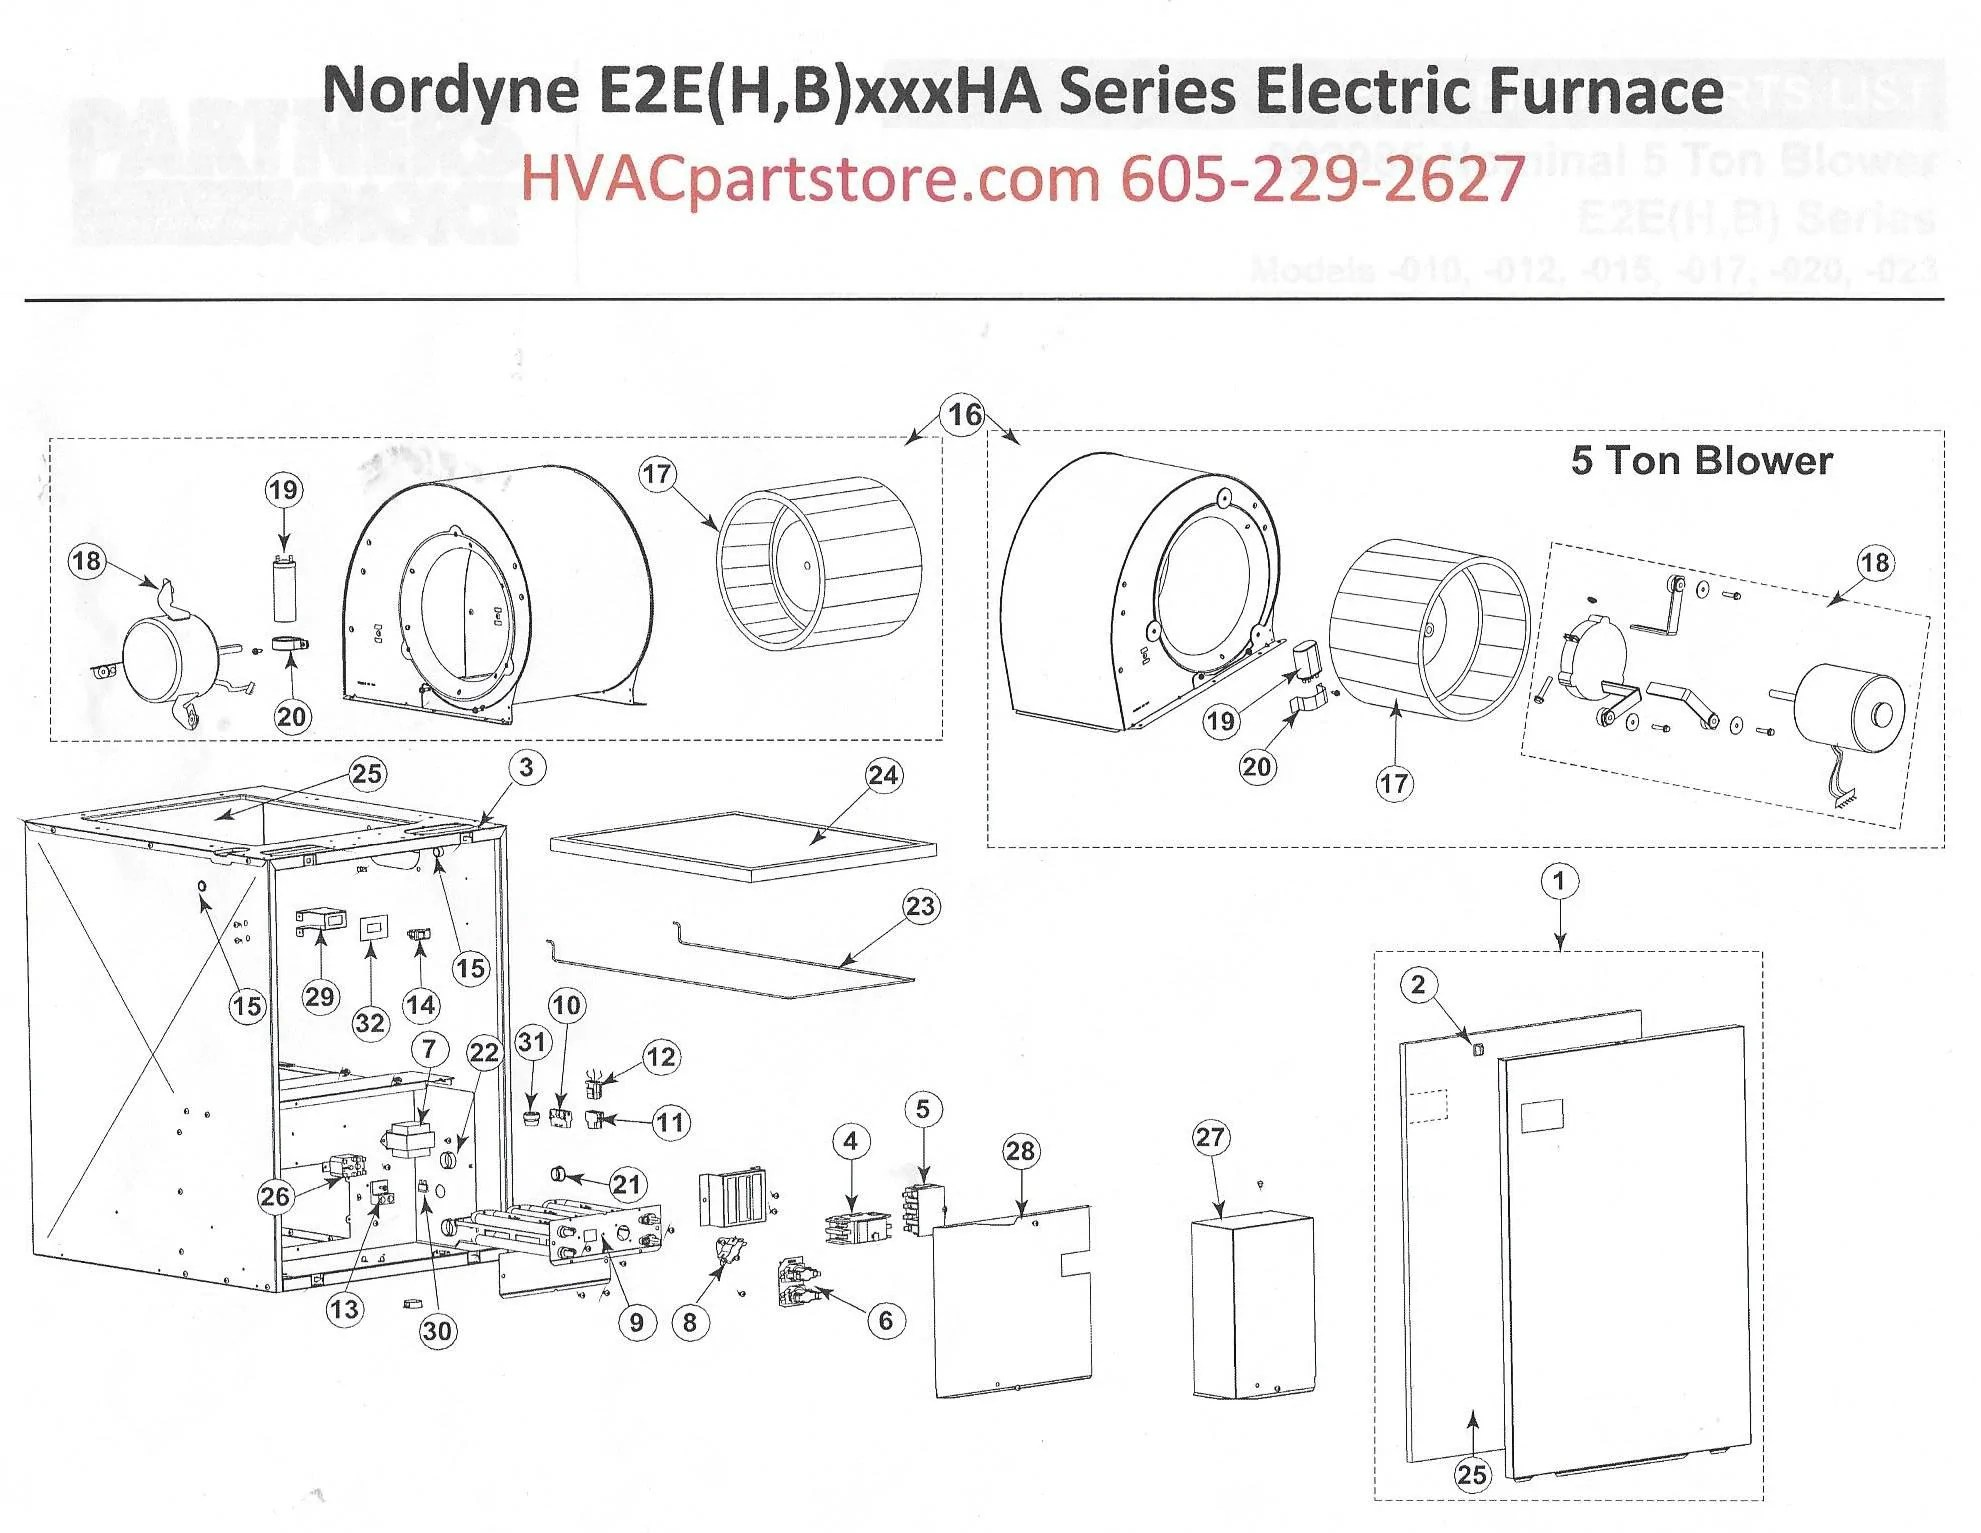 e2eh012ha nordyne electric furnace parts hvacpartstore nordyne electric furnace diagram [ 1981 x 1533 Pixel ]